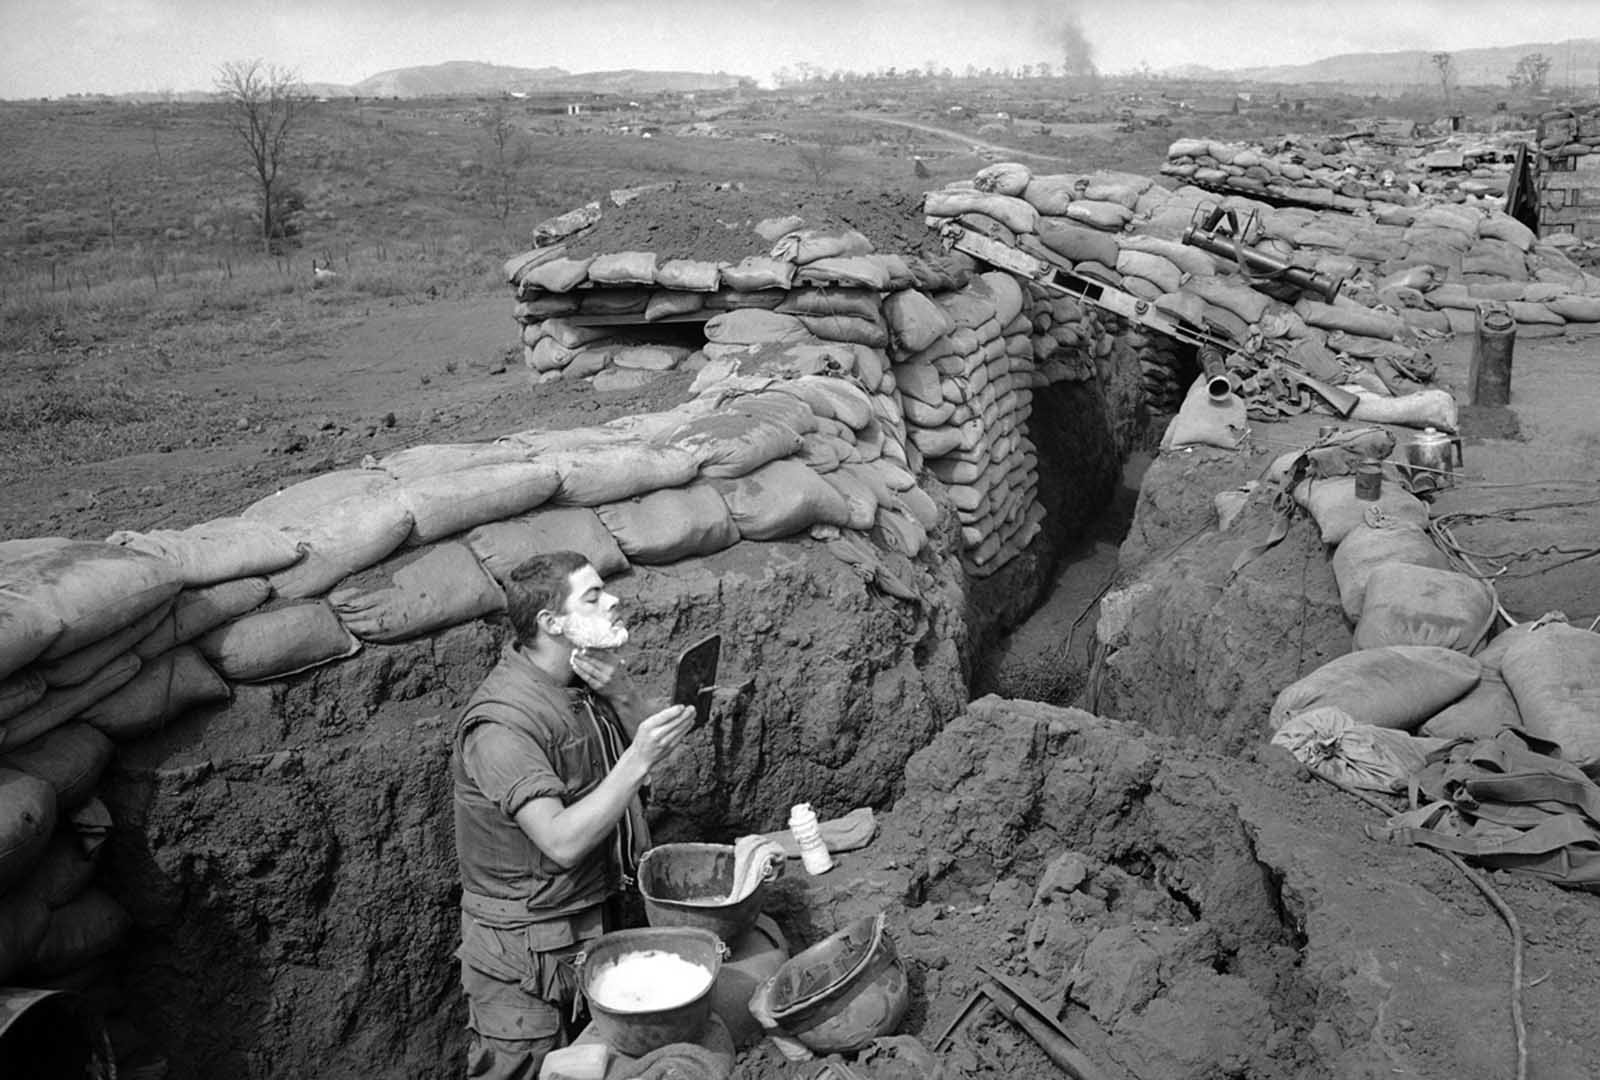 Marine Lance Corporal Roland Ball of Tacoma, Washington, wearing his flak vest, starts the day off with a shave in a trench at the Khe Sanh Base in Vietnam on March 5, 1968, which was surrounded by North Vietnamese regulars. Ball uses a helmet as a sink and a rear-view mirror taken from a military vehicle.